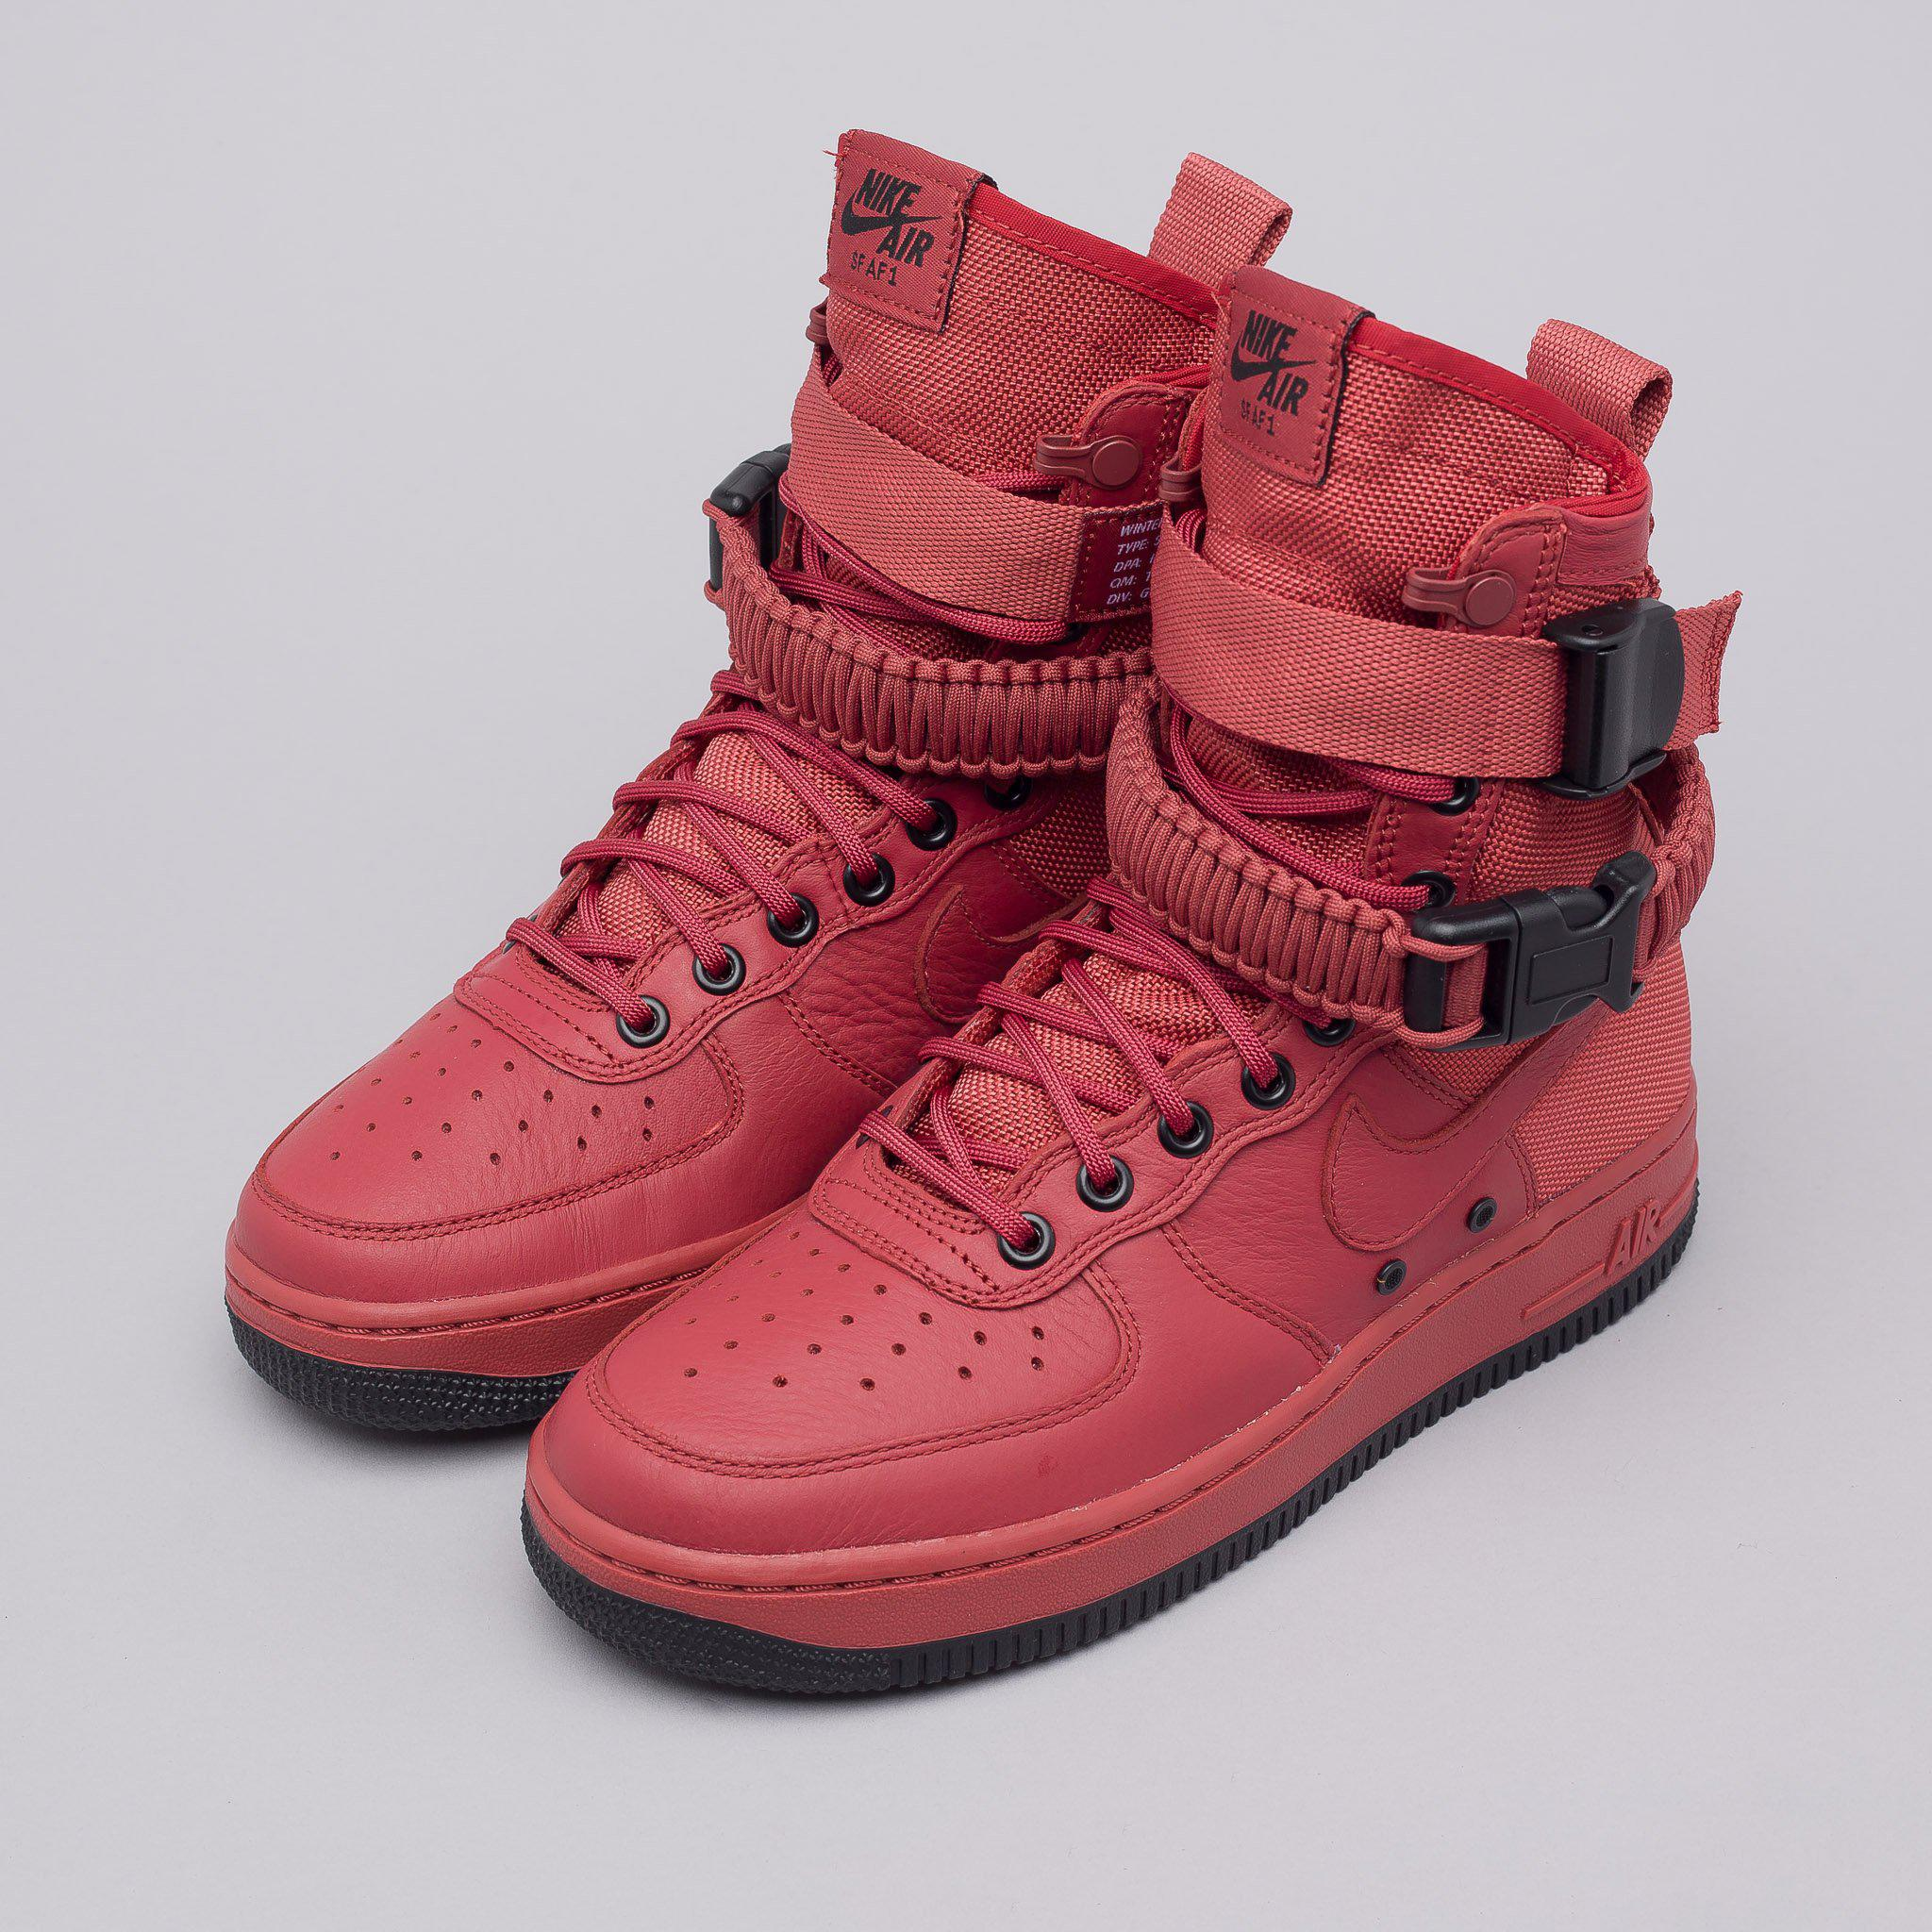 low priced f1748 693f9 Field Lyst Special Red For Force Nike 1 Men Air Cedar Women s In OOtw7aq4